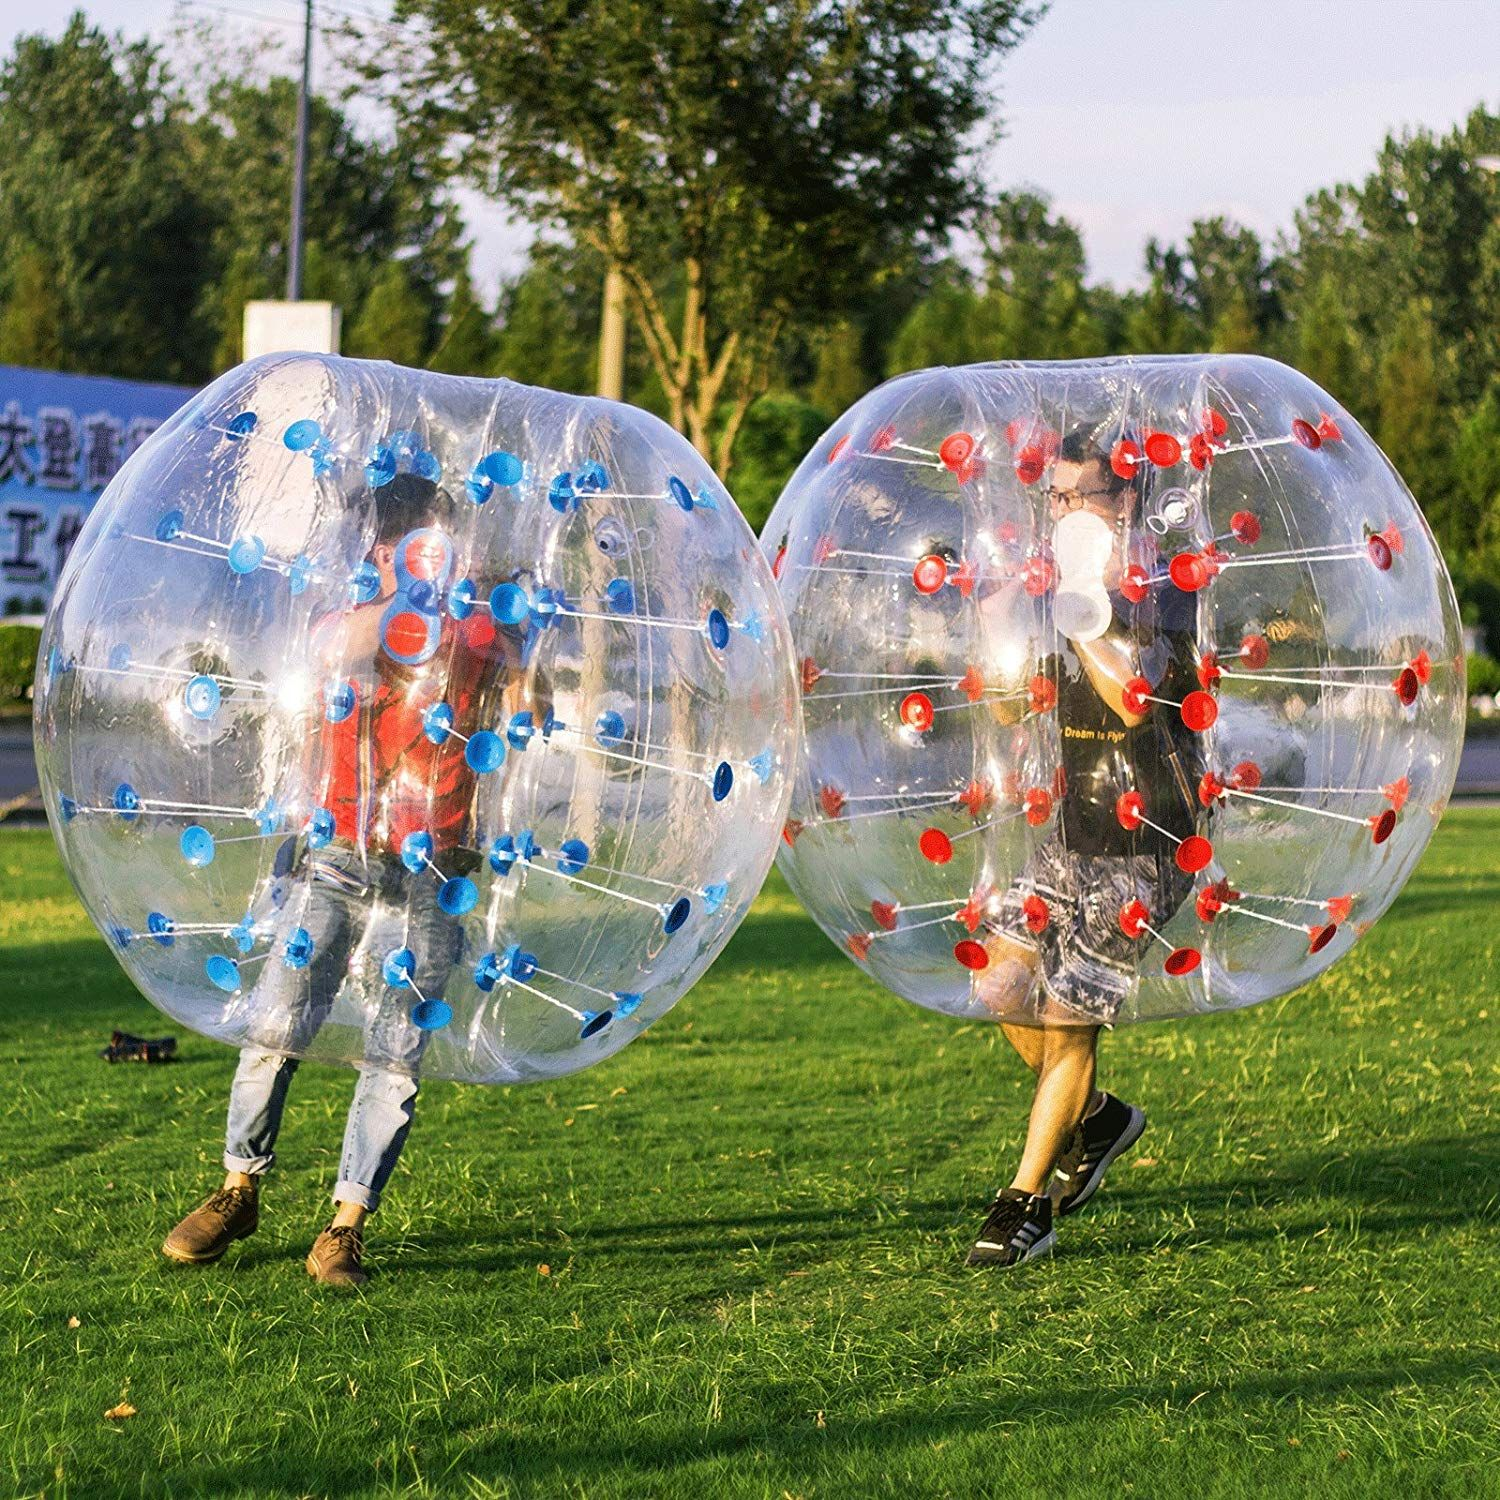 Popsport Inflatable Bumper Ball 1 2m 4ft 1 5m 5ft Diameter Bubble Soccer Ball Blow Up Toy In 5 Min Inflatable Bumper Bubbl Bubble Soccer Inflatable Soccer Ball